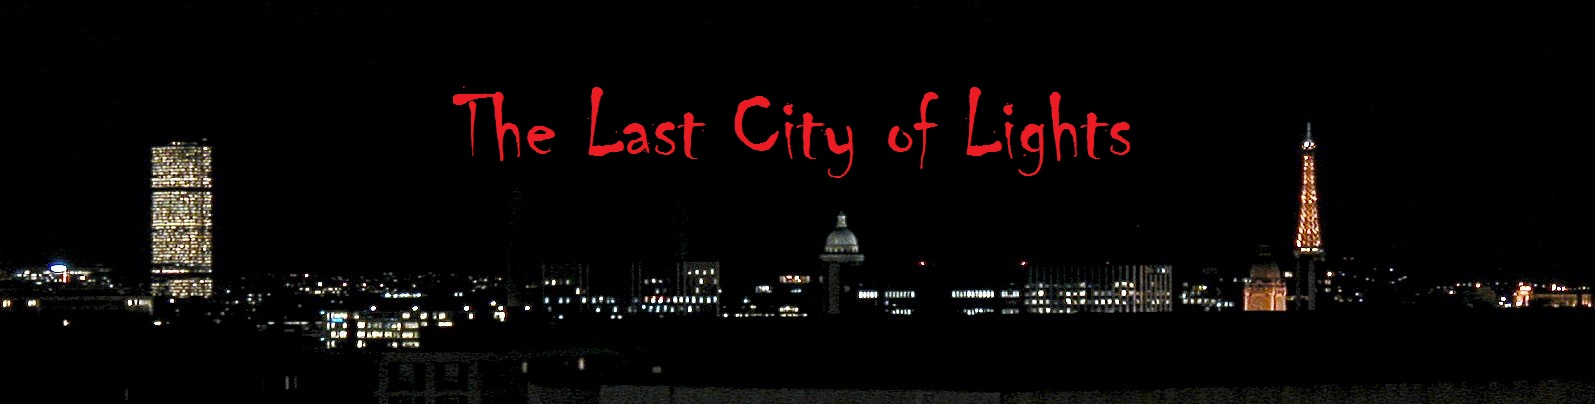 The last city of lights   banner